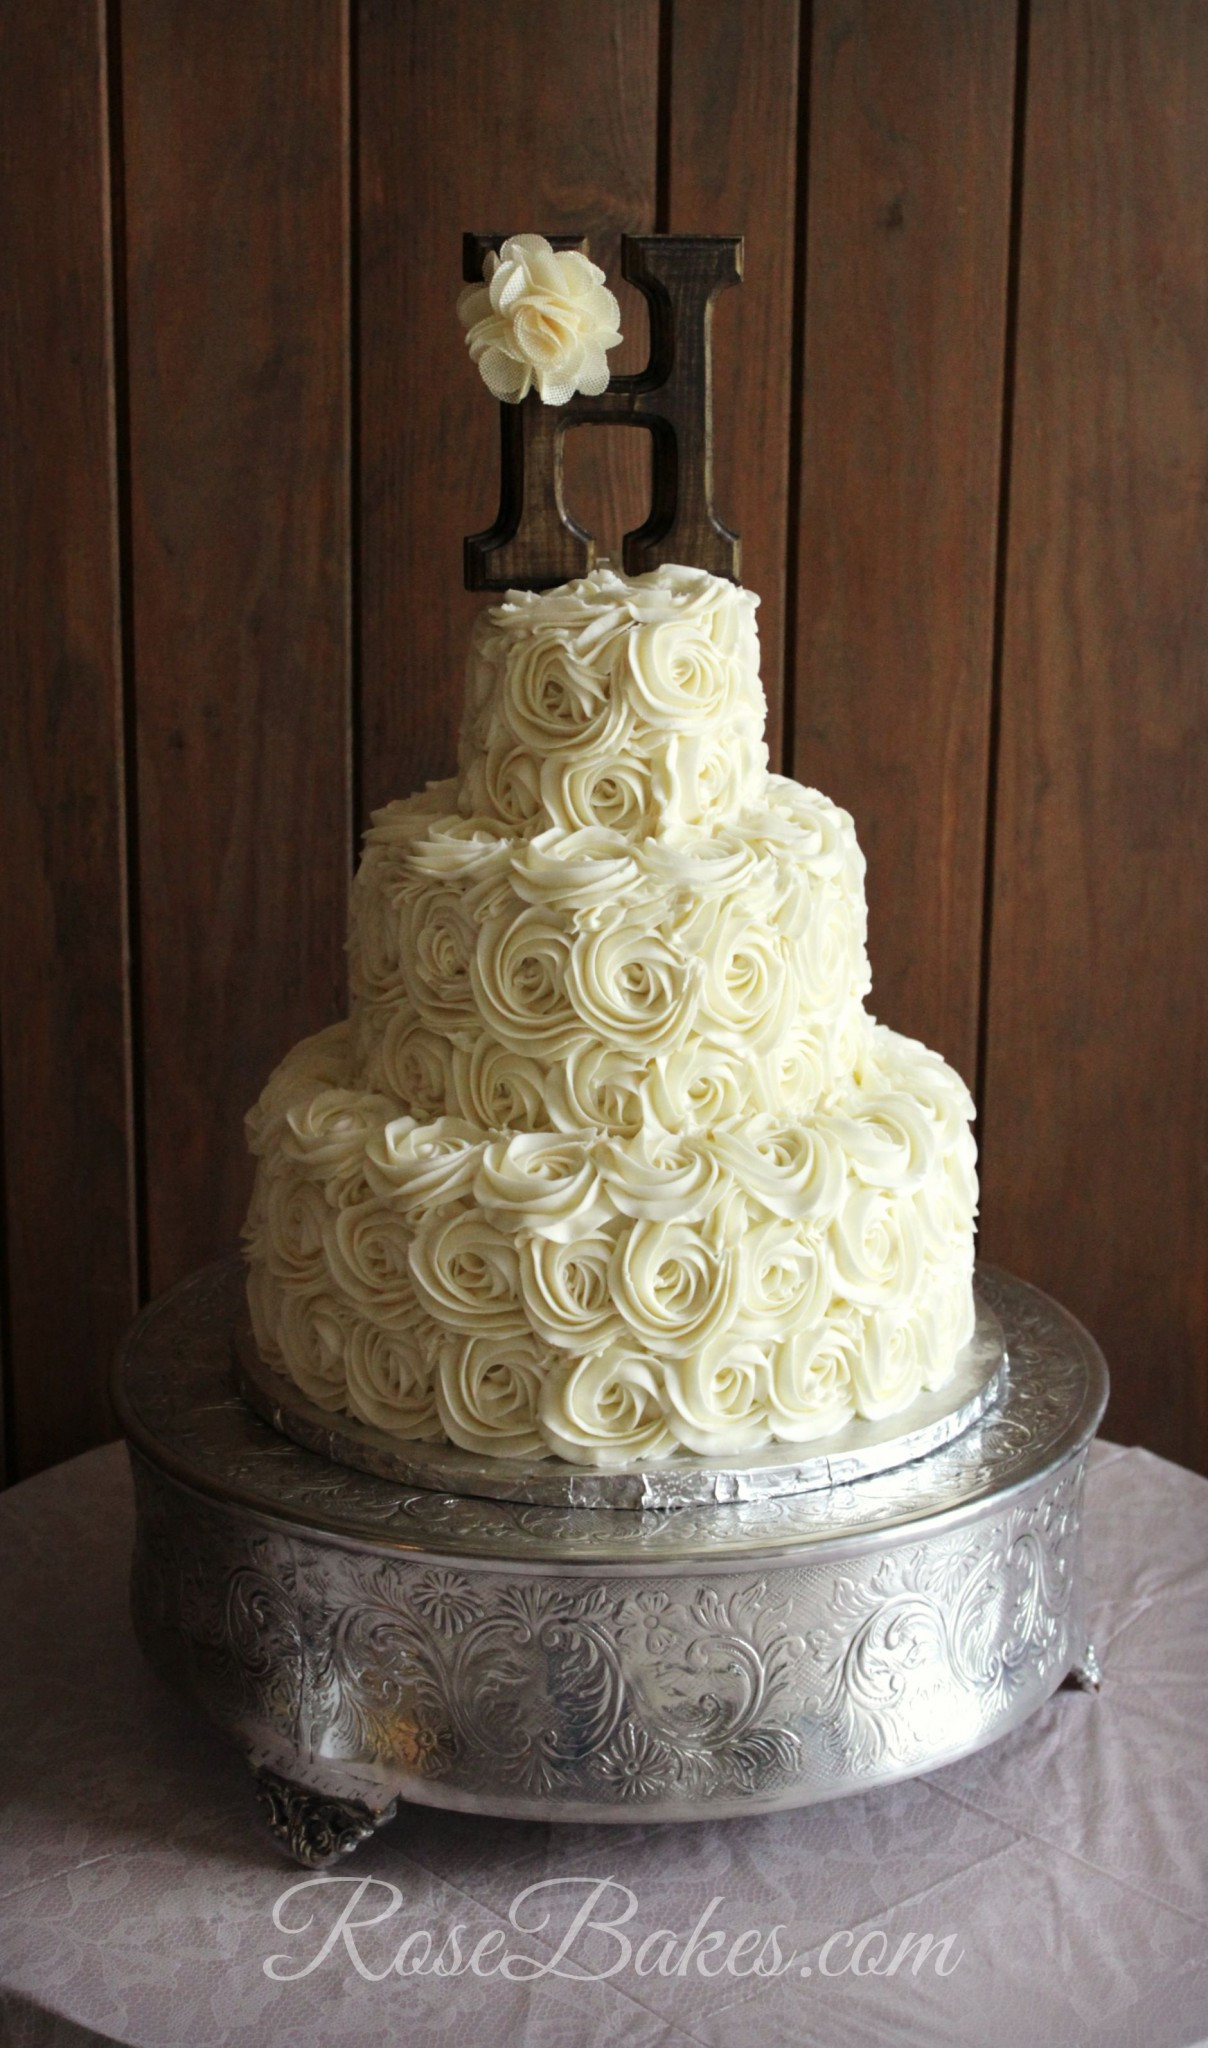 Wedding Cakes With Roses  Rustic Buttercream Roses Wedding Cake Rose Bakes